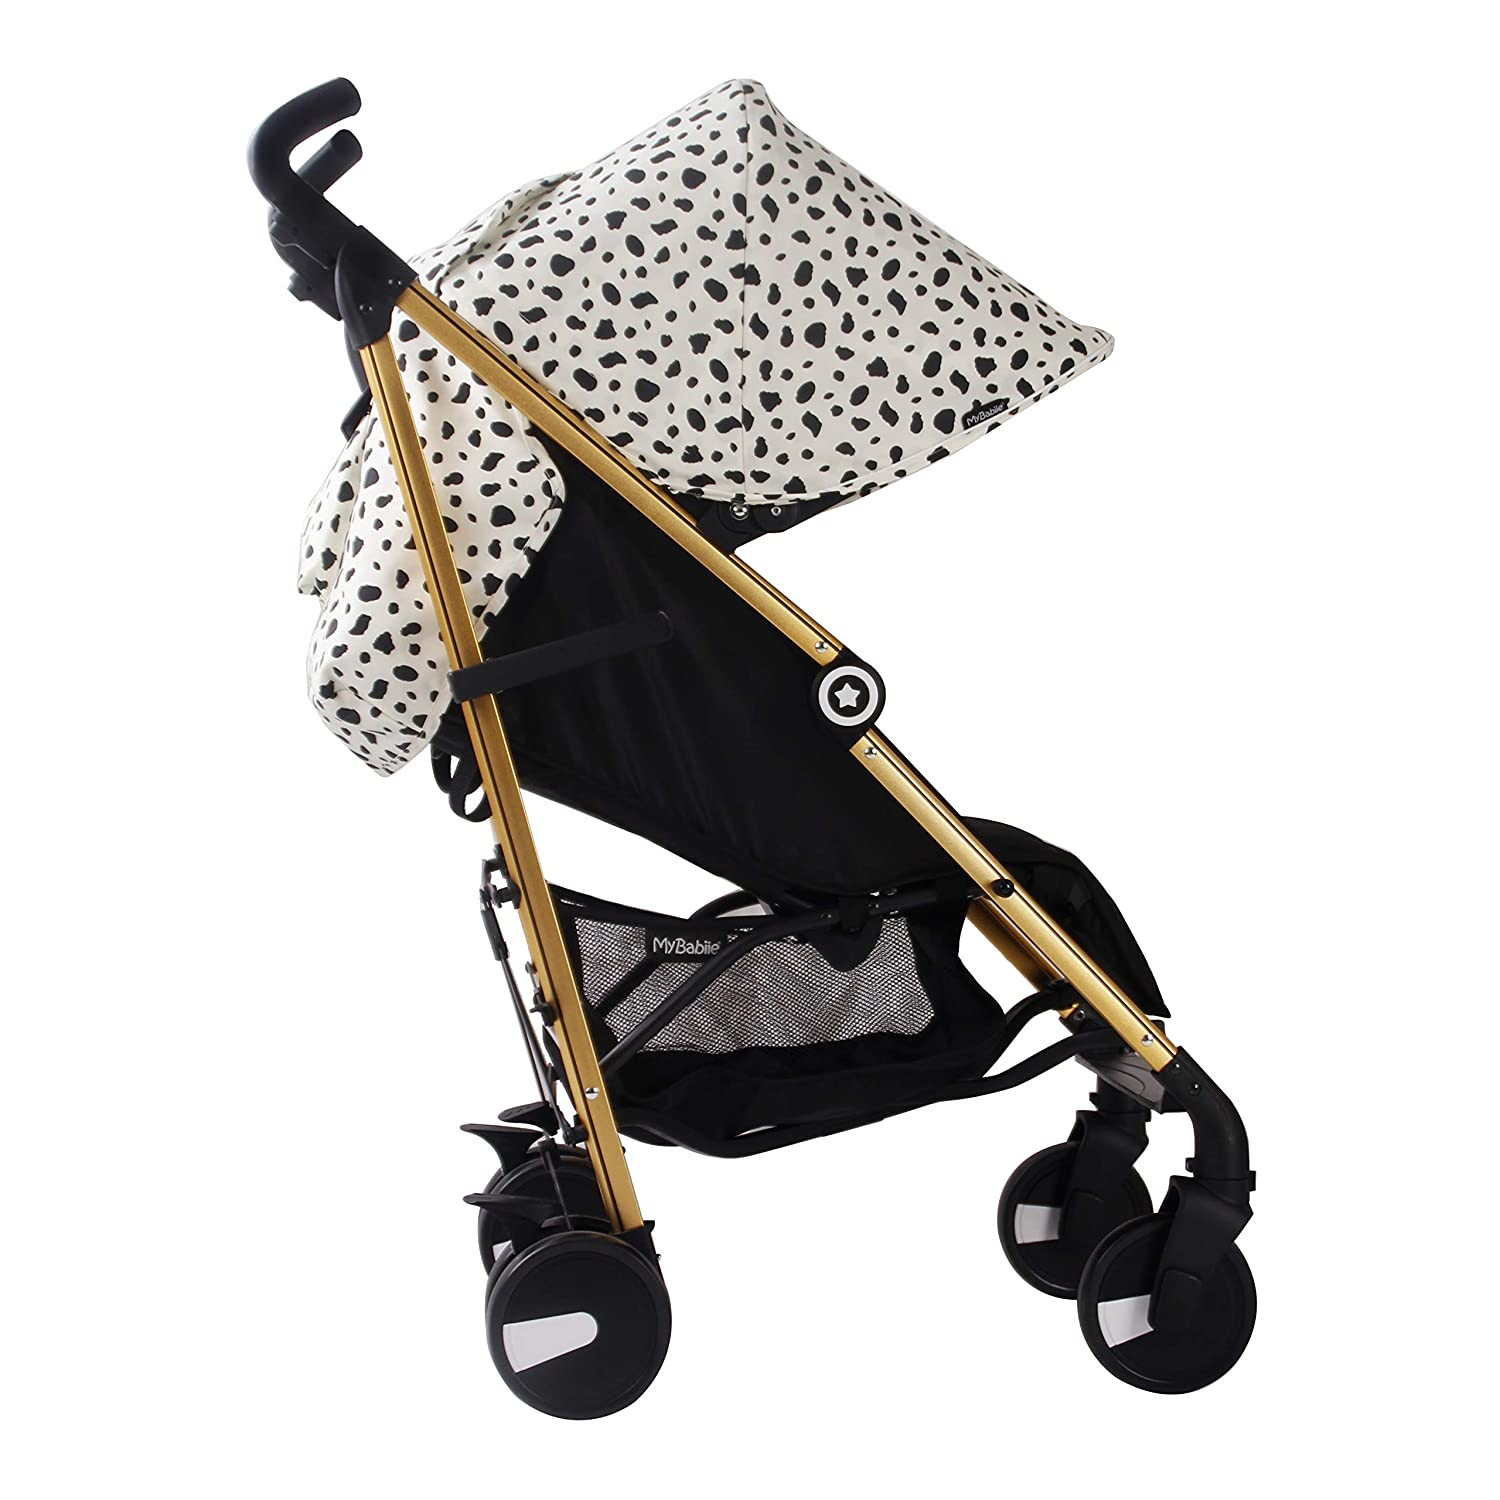 My Babiie Catwalk Dalmatian Baby Stroller Lightweight Baby Stroller with Carry Handle Gold Frame and Dalmatian Canopy Suitable from Birth 33 lbs